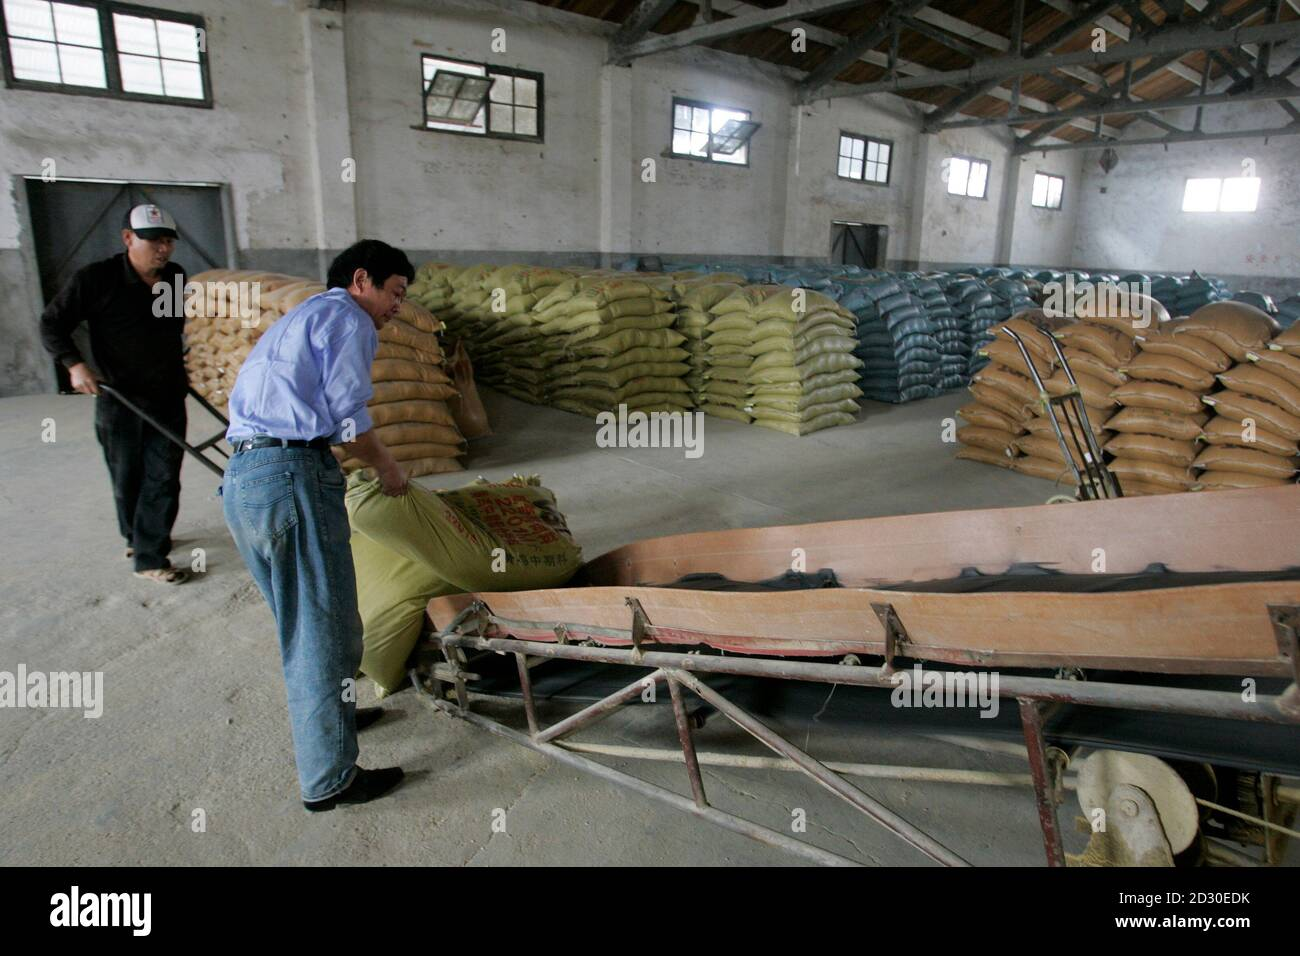 Men work at a grains storehouse in Nanhui district on the outskirts of Shanghai April 7, 2008. China will offer farmers more favourable treatment to encourage them to sow crops so as to guarantee grain reserves and ease inflationary pressures, Premier Wen Jiabao said in comments published on Sunday. REUTERS/Aly Song (CHINA) Stock Photo